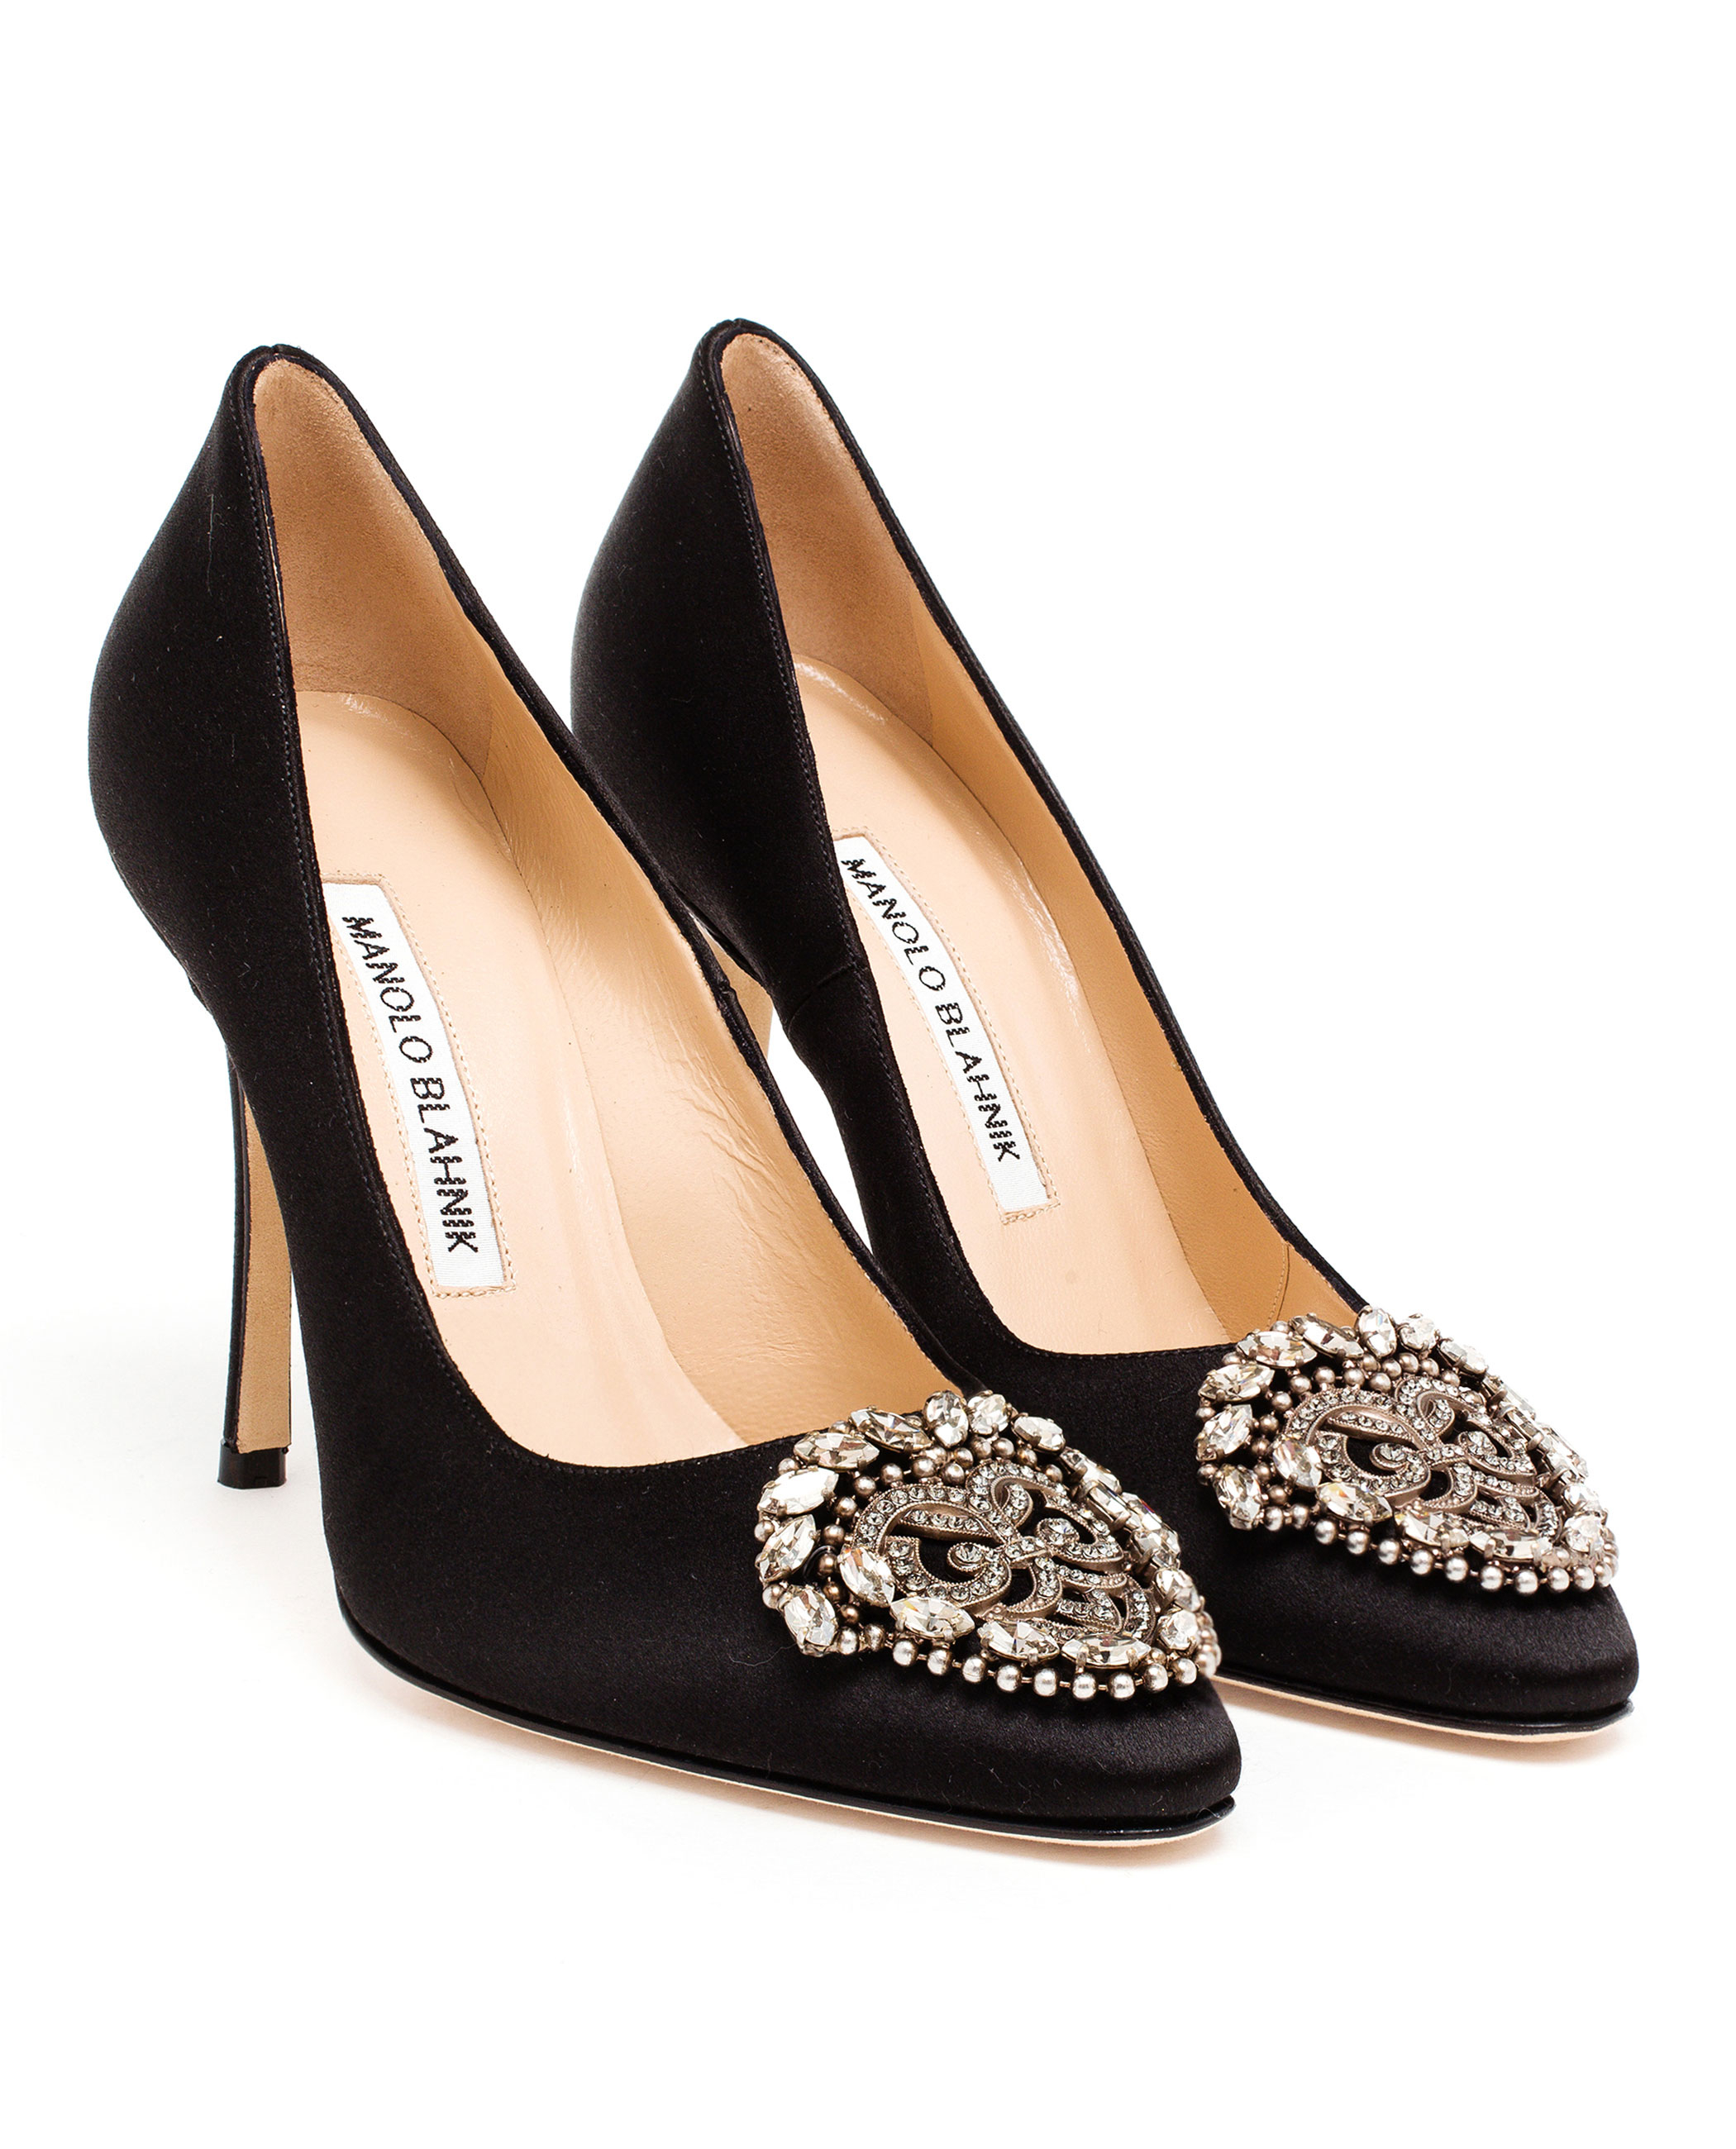 Manolo blahnik okkava satin pumps in black lyst for Shoes by manolo blahnik